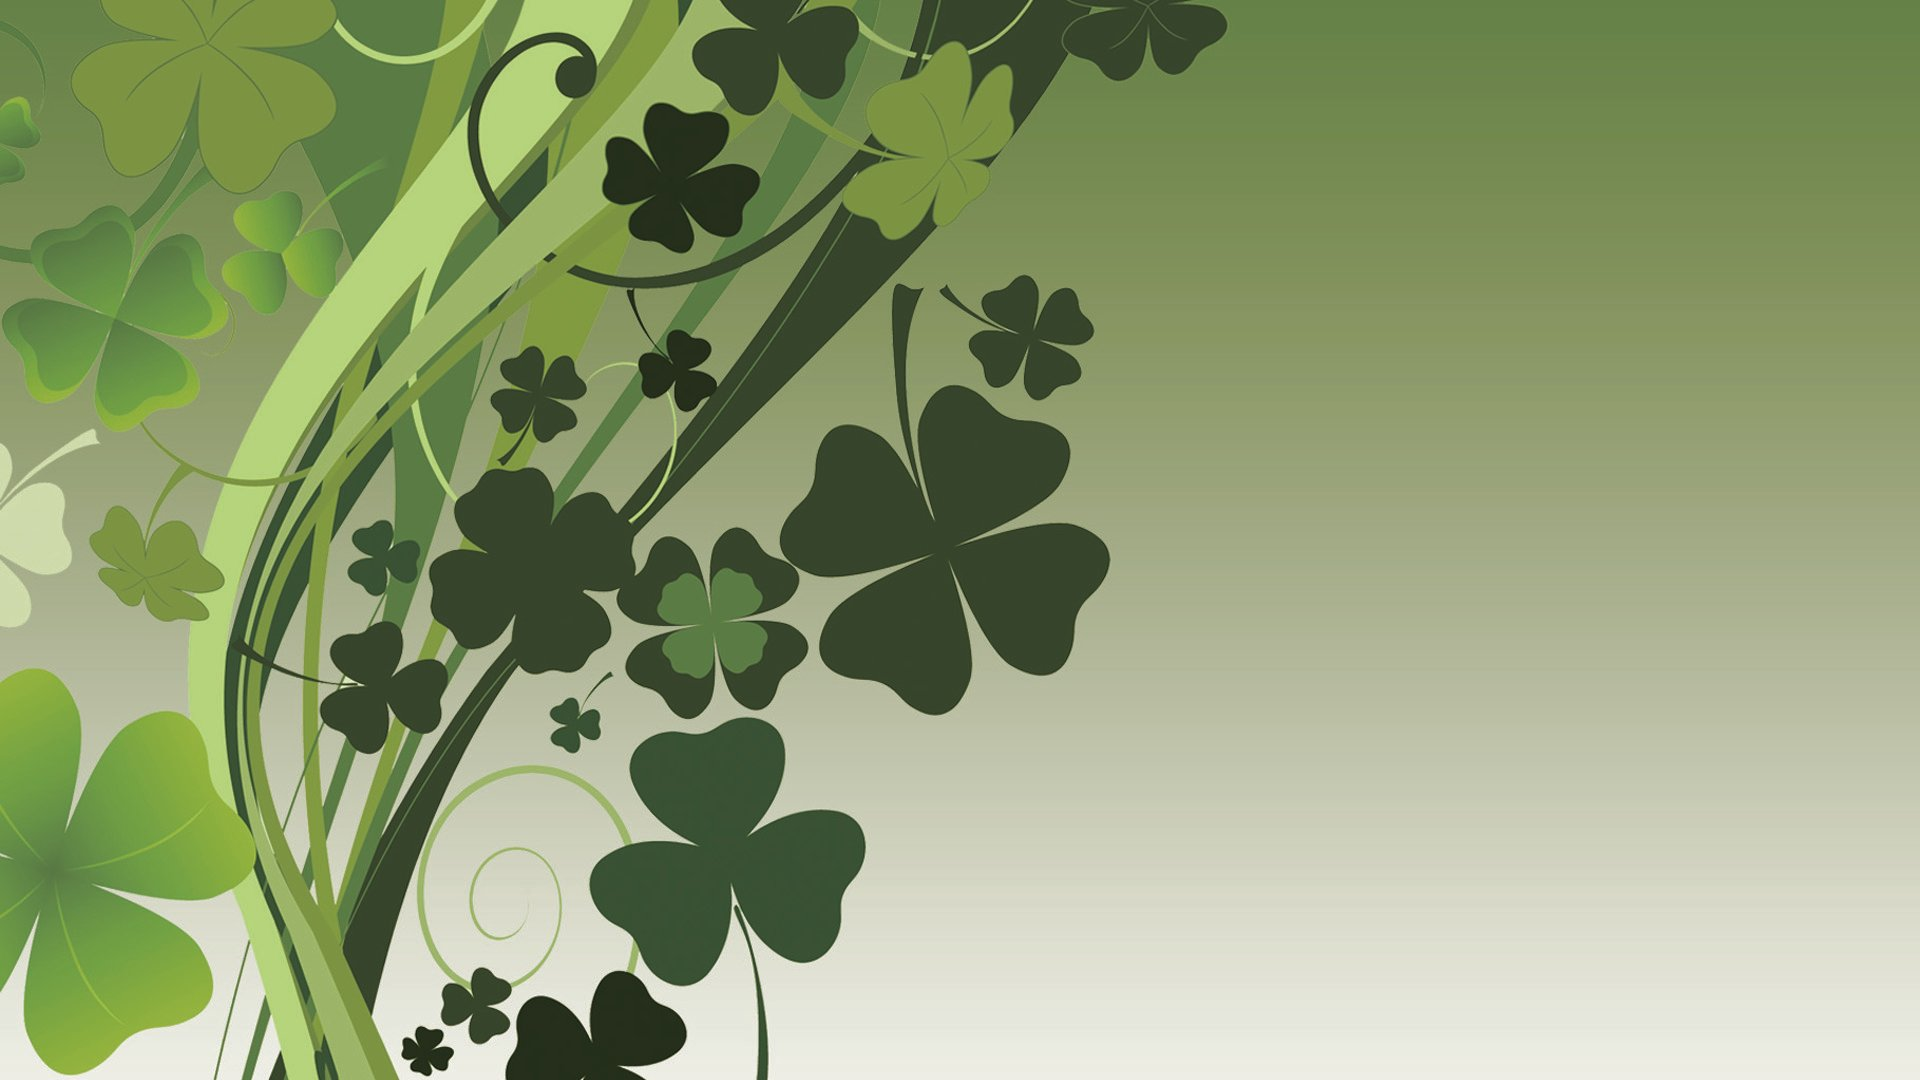 45 New Clover Wallpapers BsnSCB Graphics 1920x1080